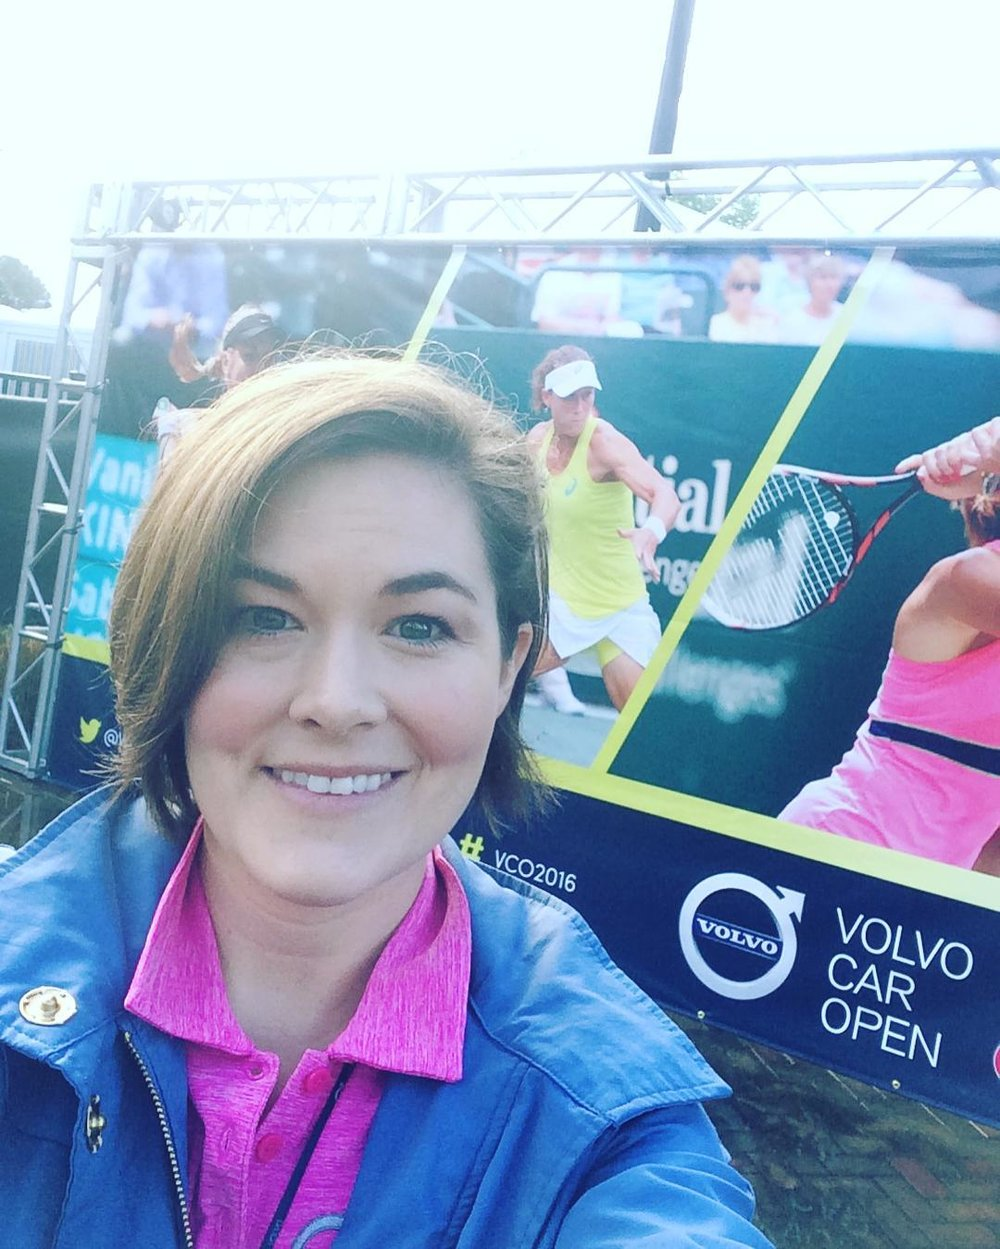 Here we go, kicking off day 1 of the #volvocaropen. I can't believe that this is our sixth year handling all the pr and media relations for the tournament. 🎾🏆 #vco2016 #omwerkperks